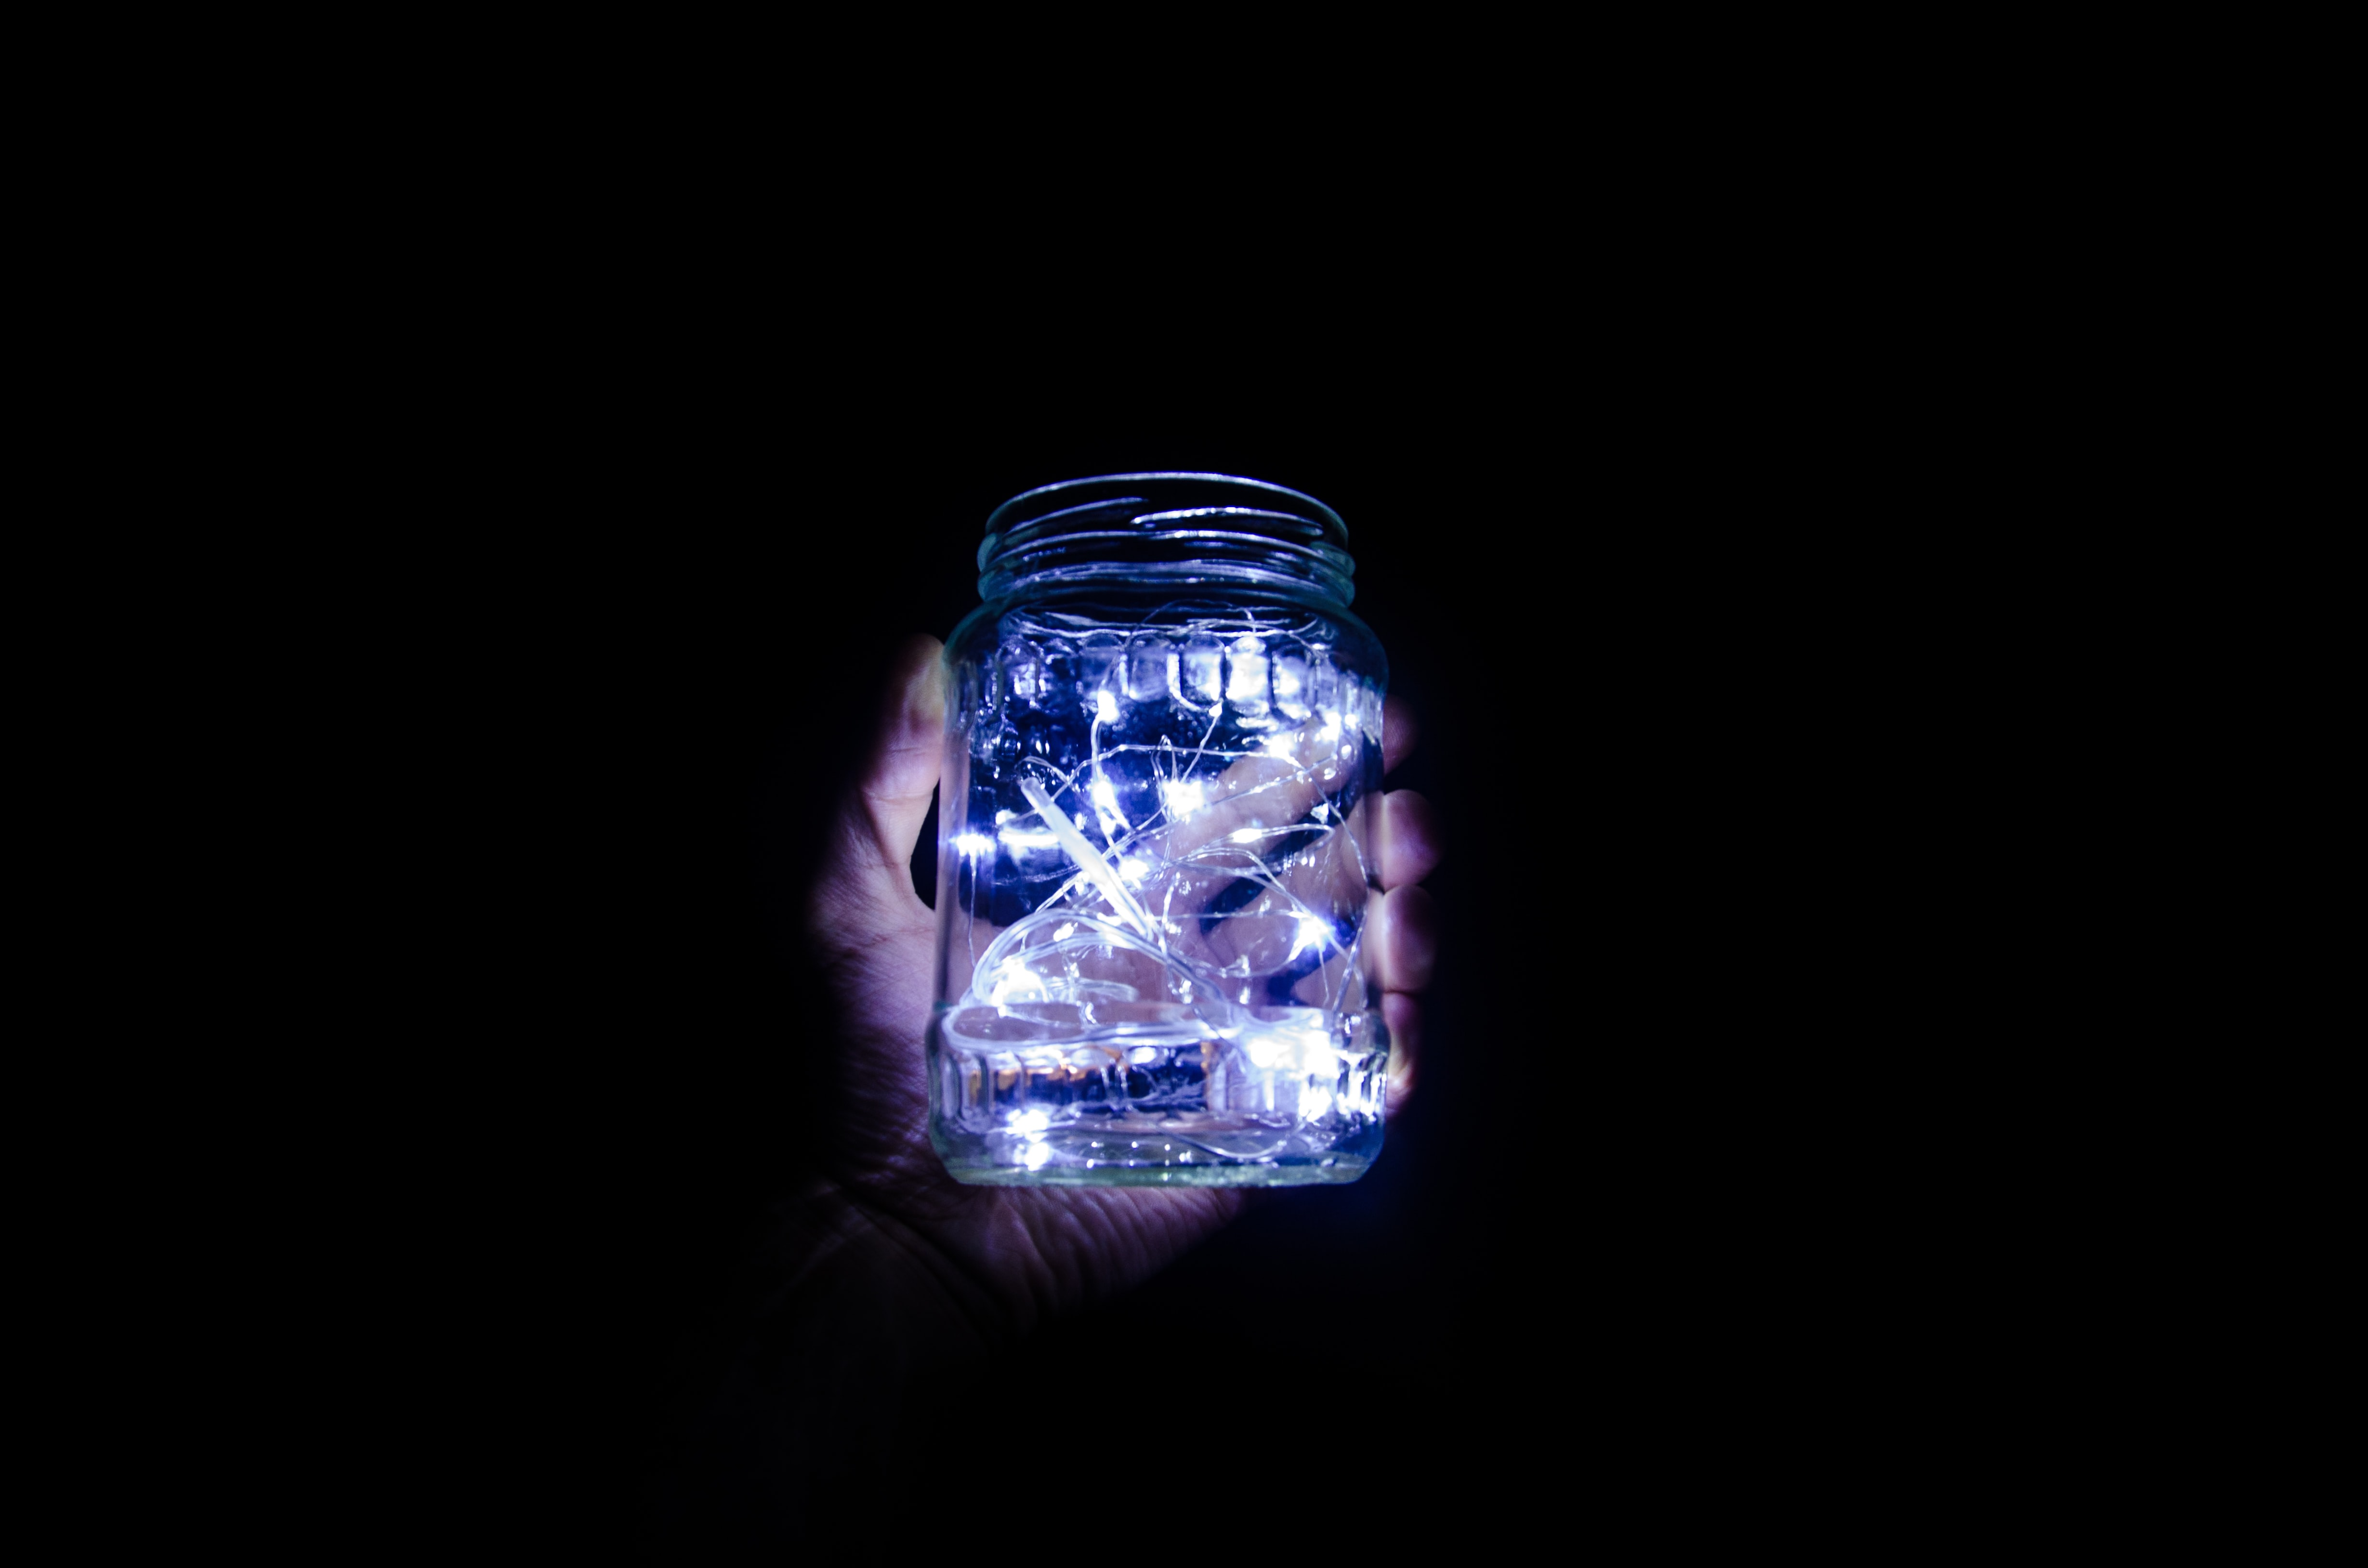 person holding jar with string lights